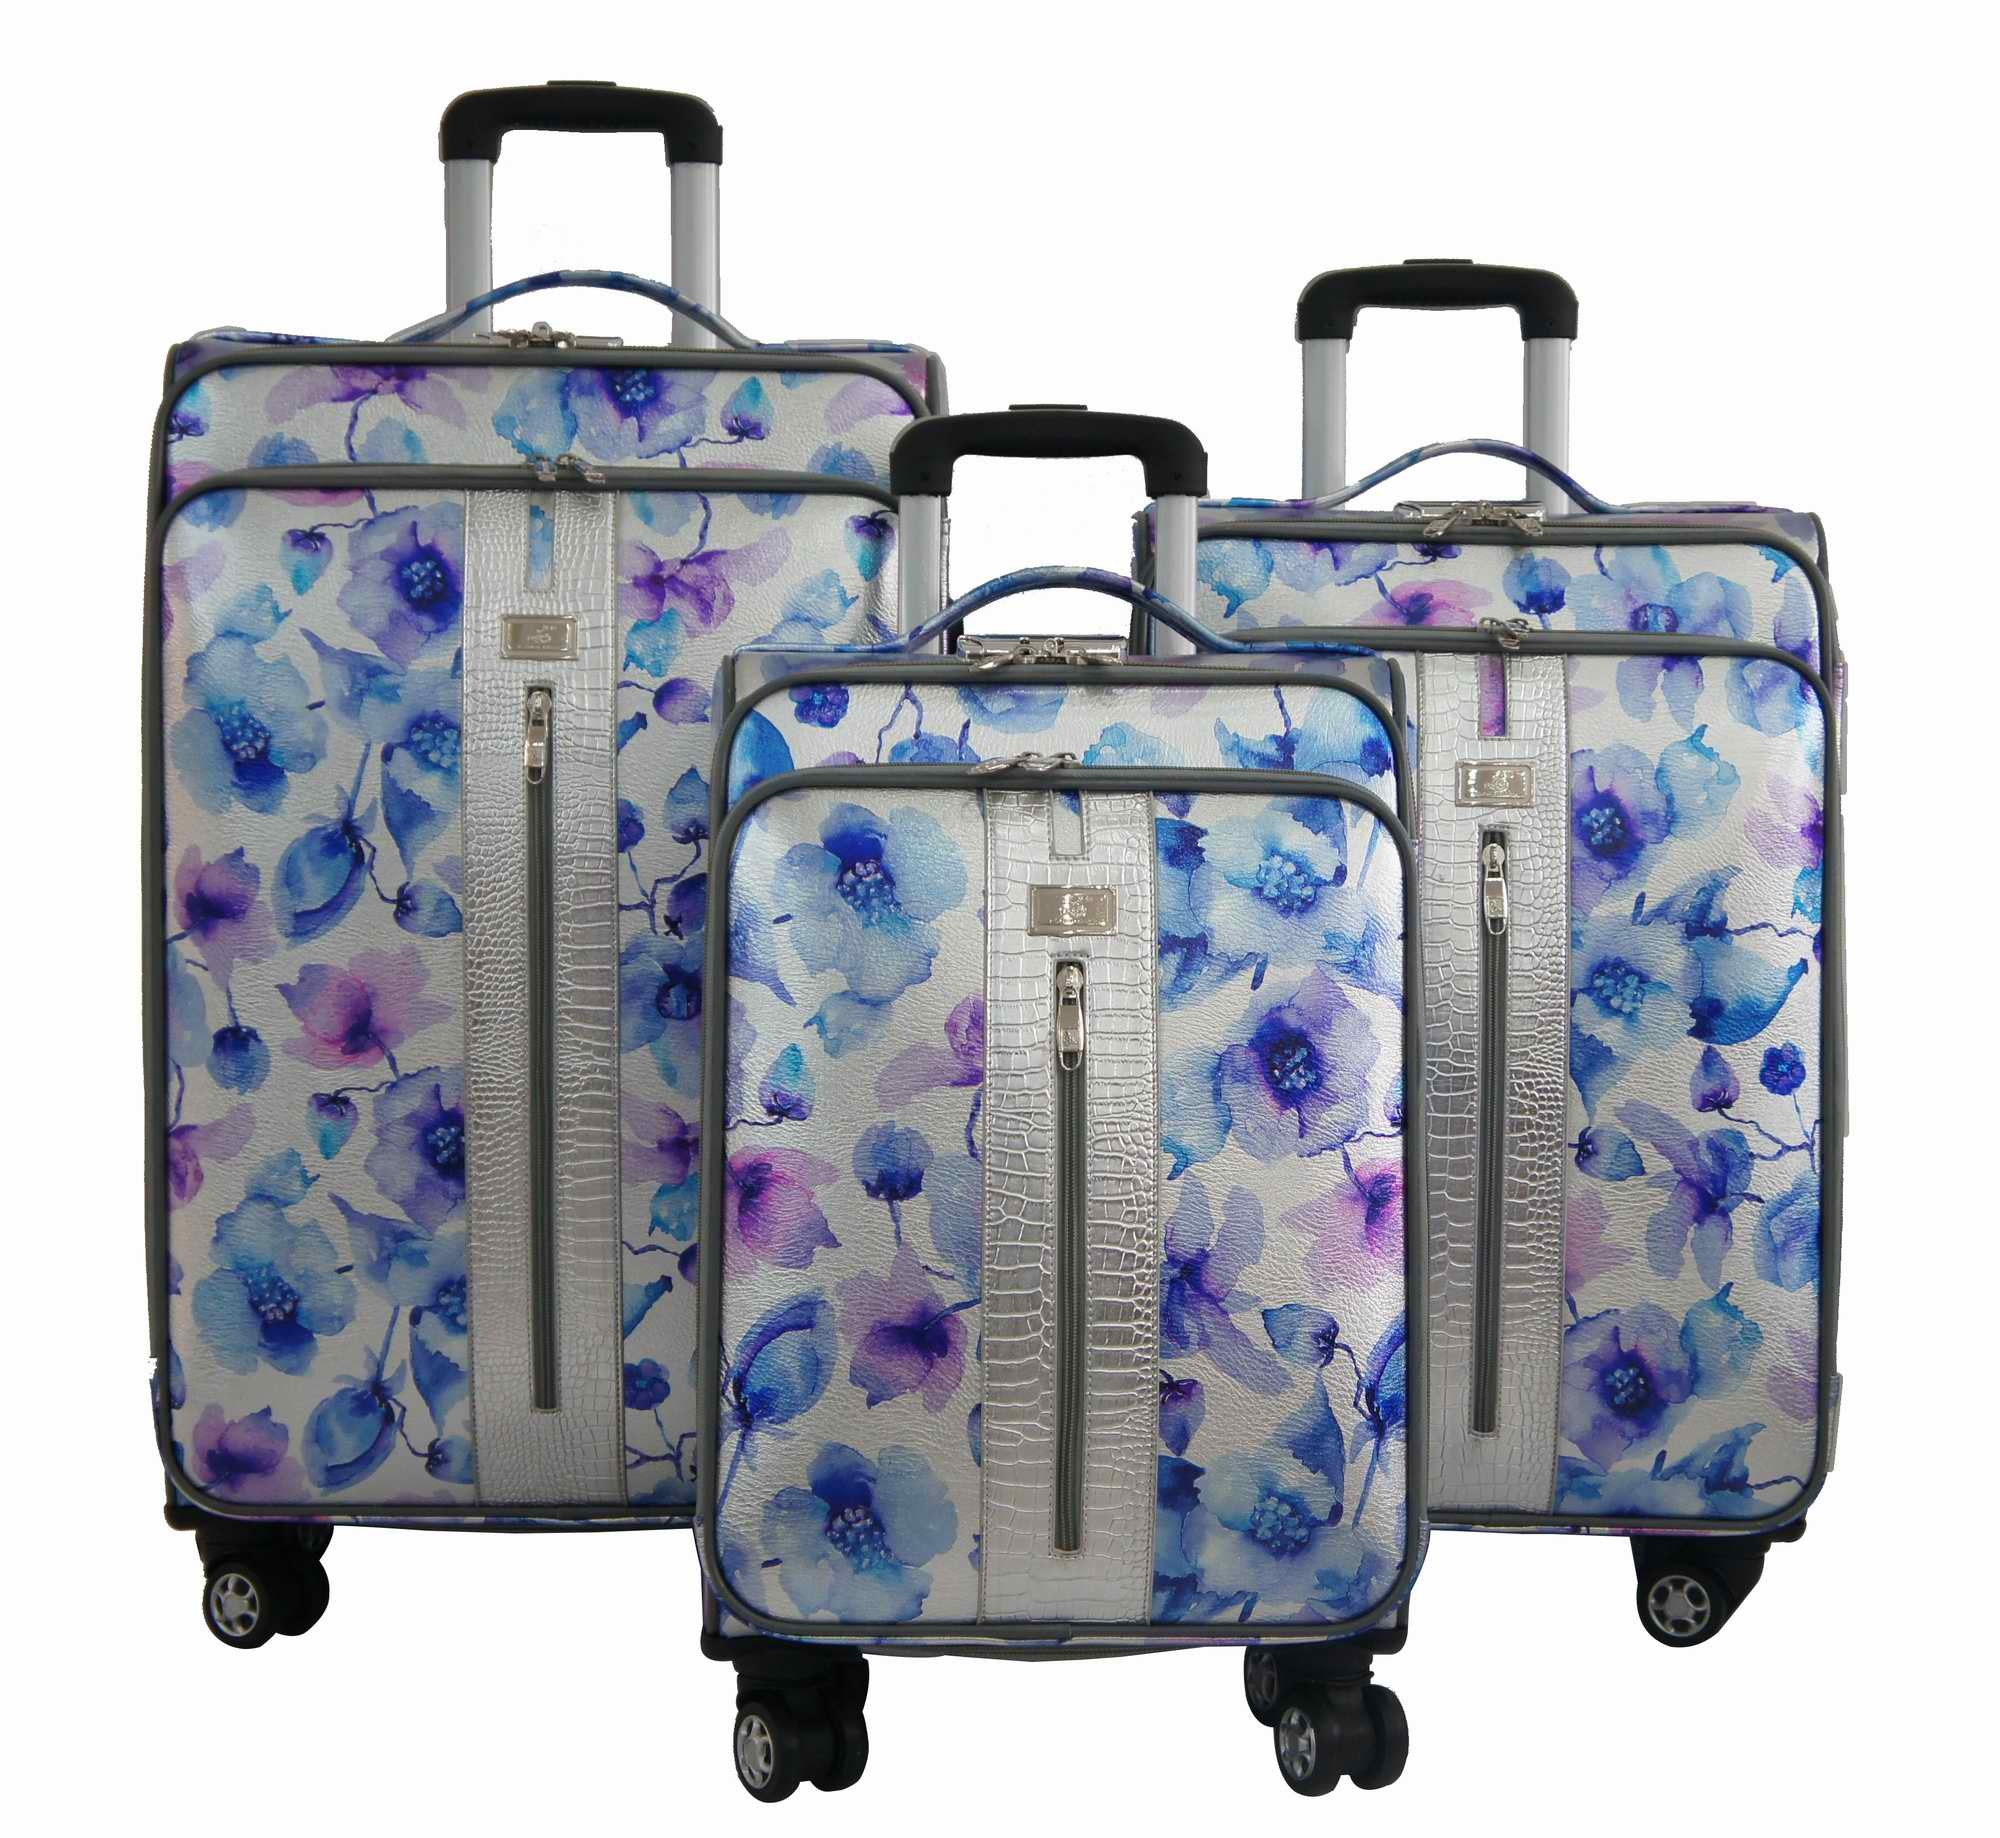 PU Bags and Cases Trolley Bags Luggage 1jb014